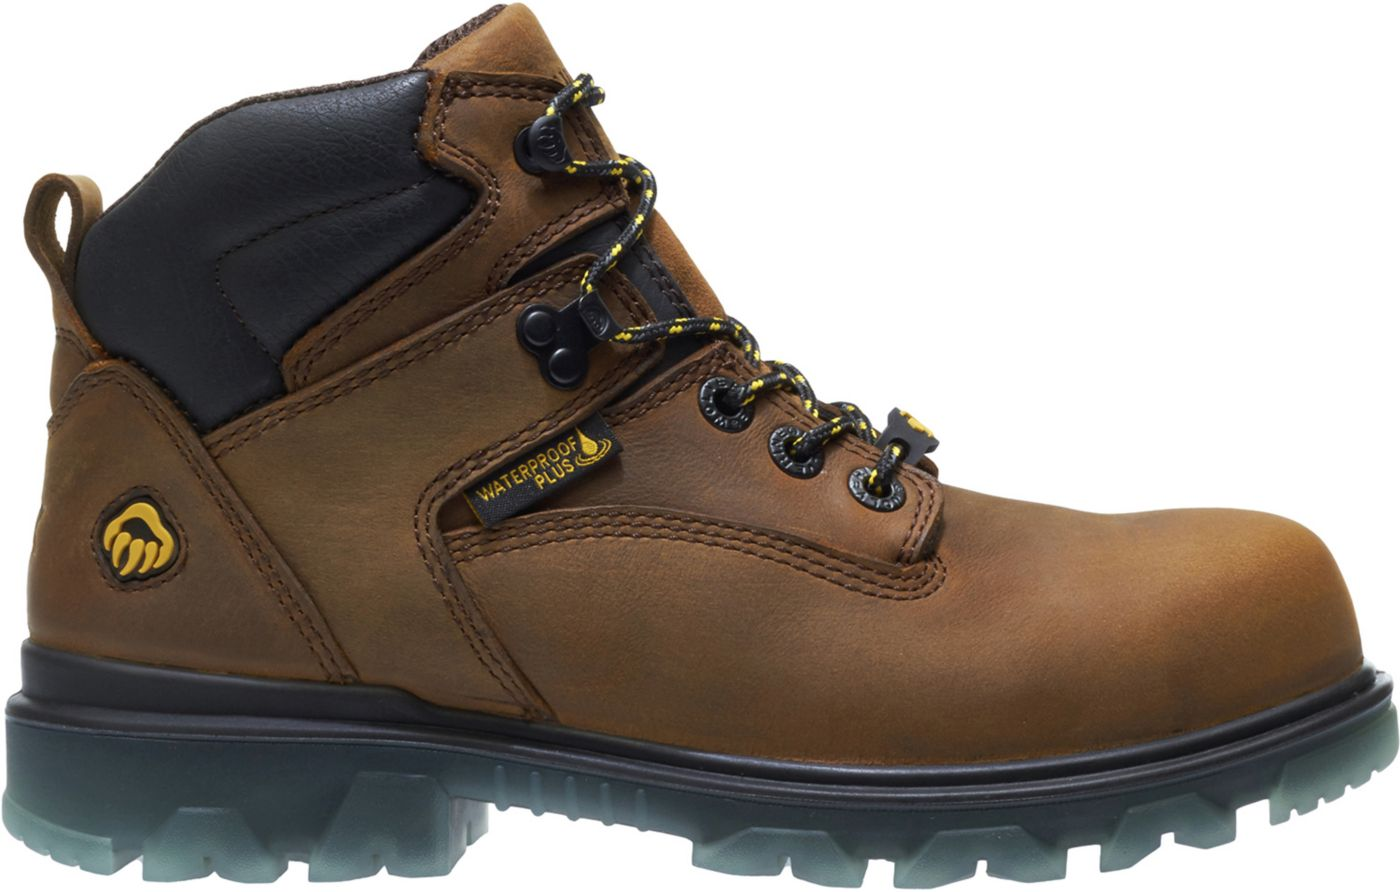 Wolverine Women's I-90 EPX Composite Toe Work Boots